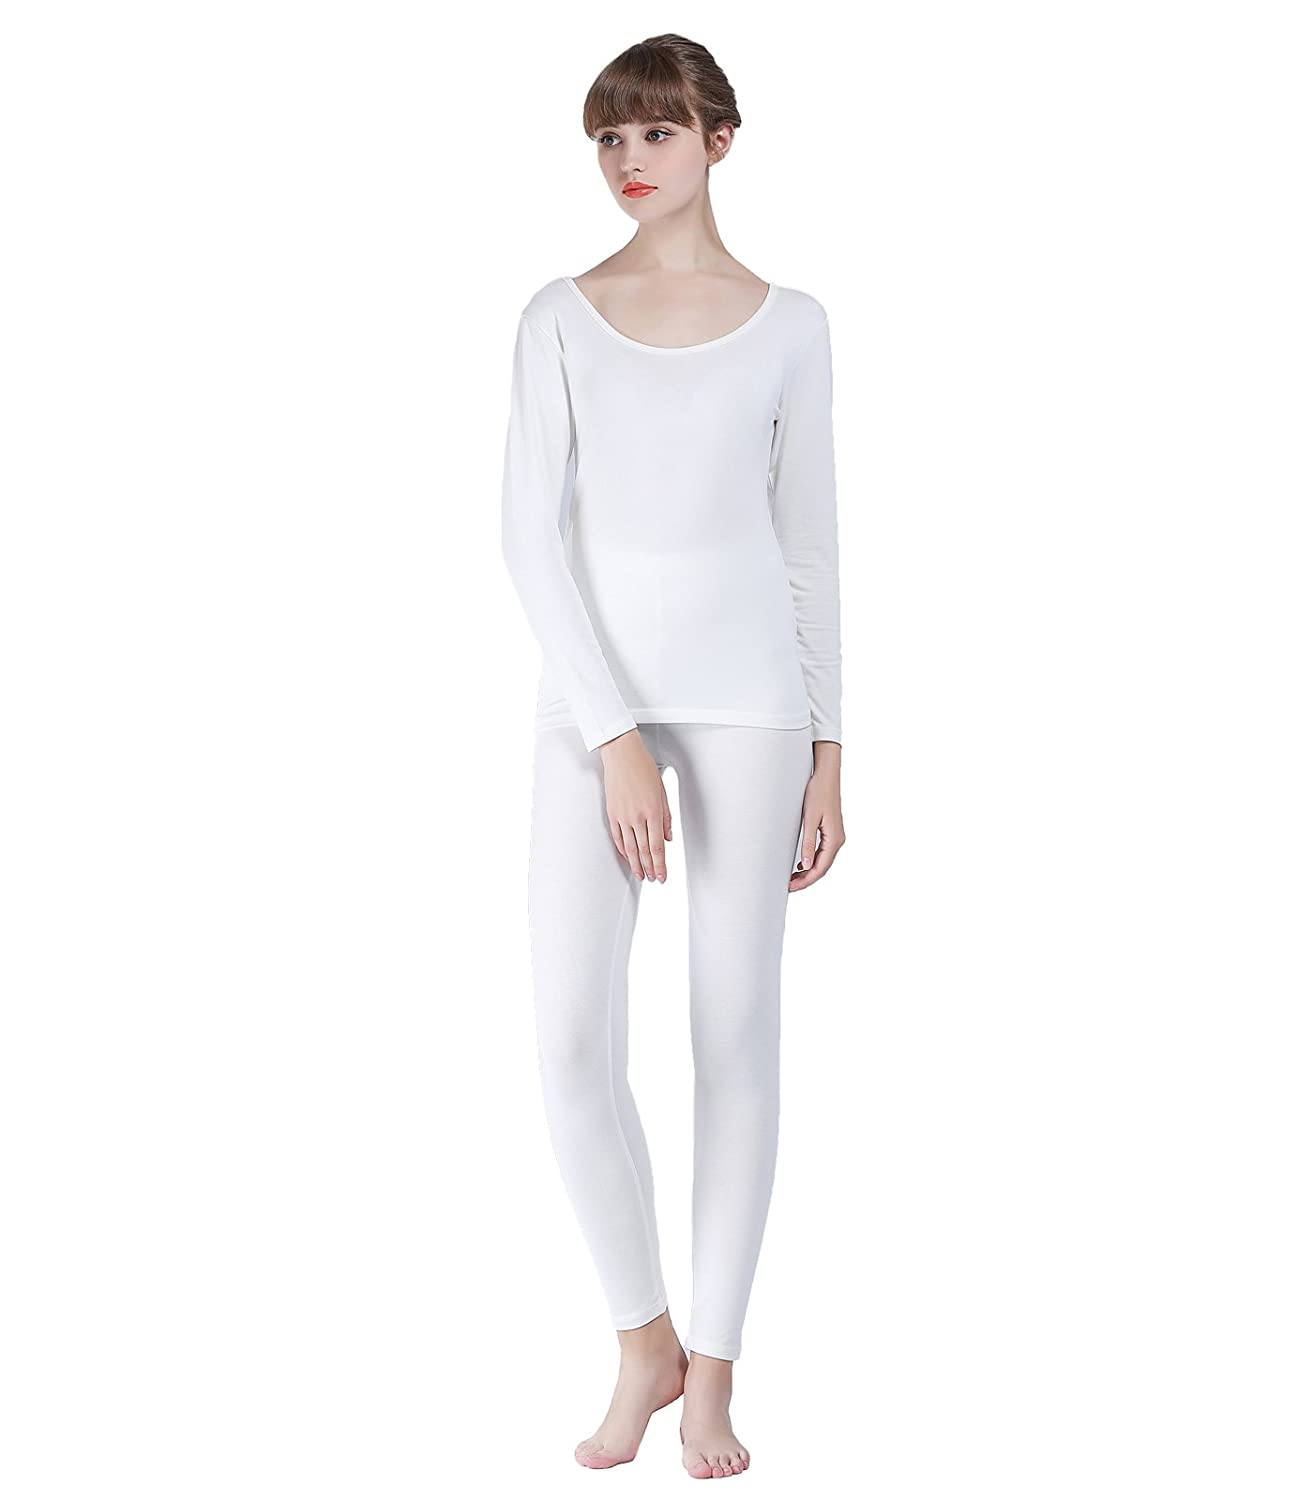 Liang Rou Women's Round Neck Thin Thermal Underwear Long Johns Set MS561-P